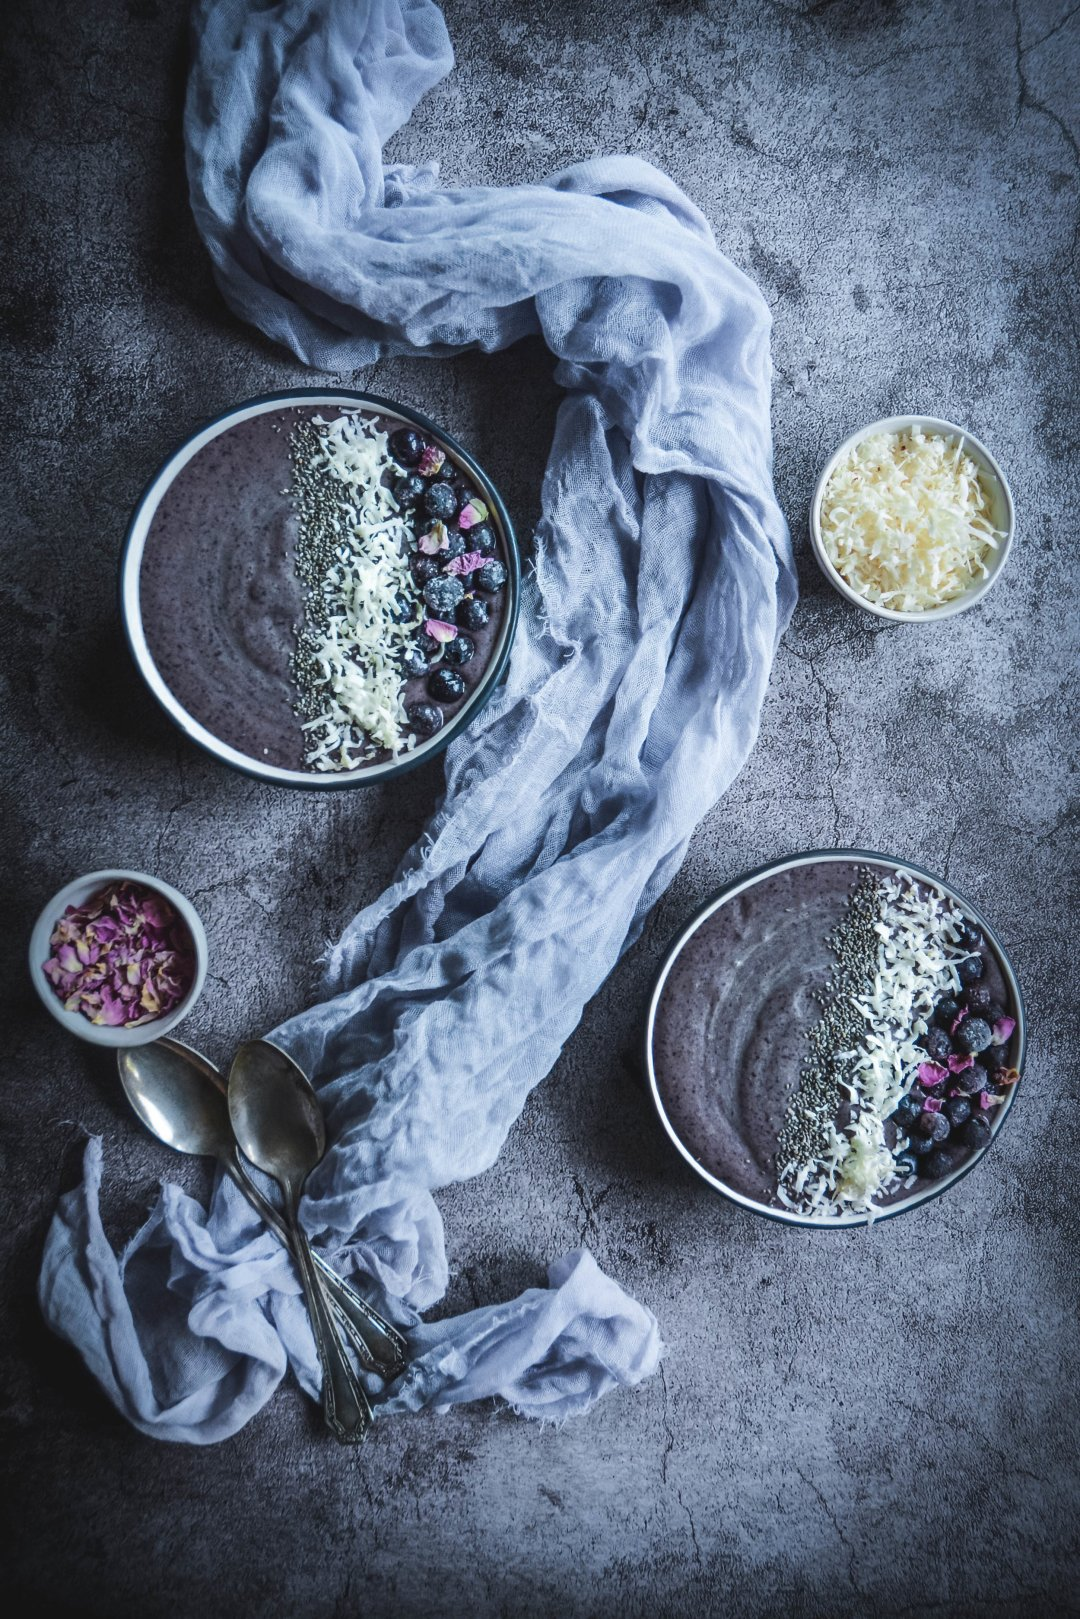 two frozen smoothie bowls, coconut flakes, napkin, spoons, bowl of rose petals